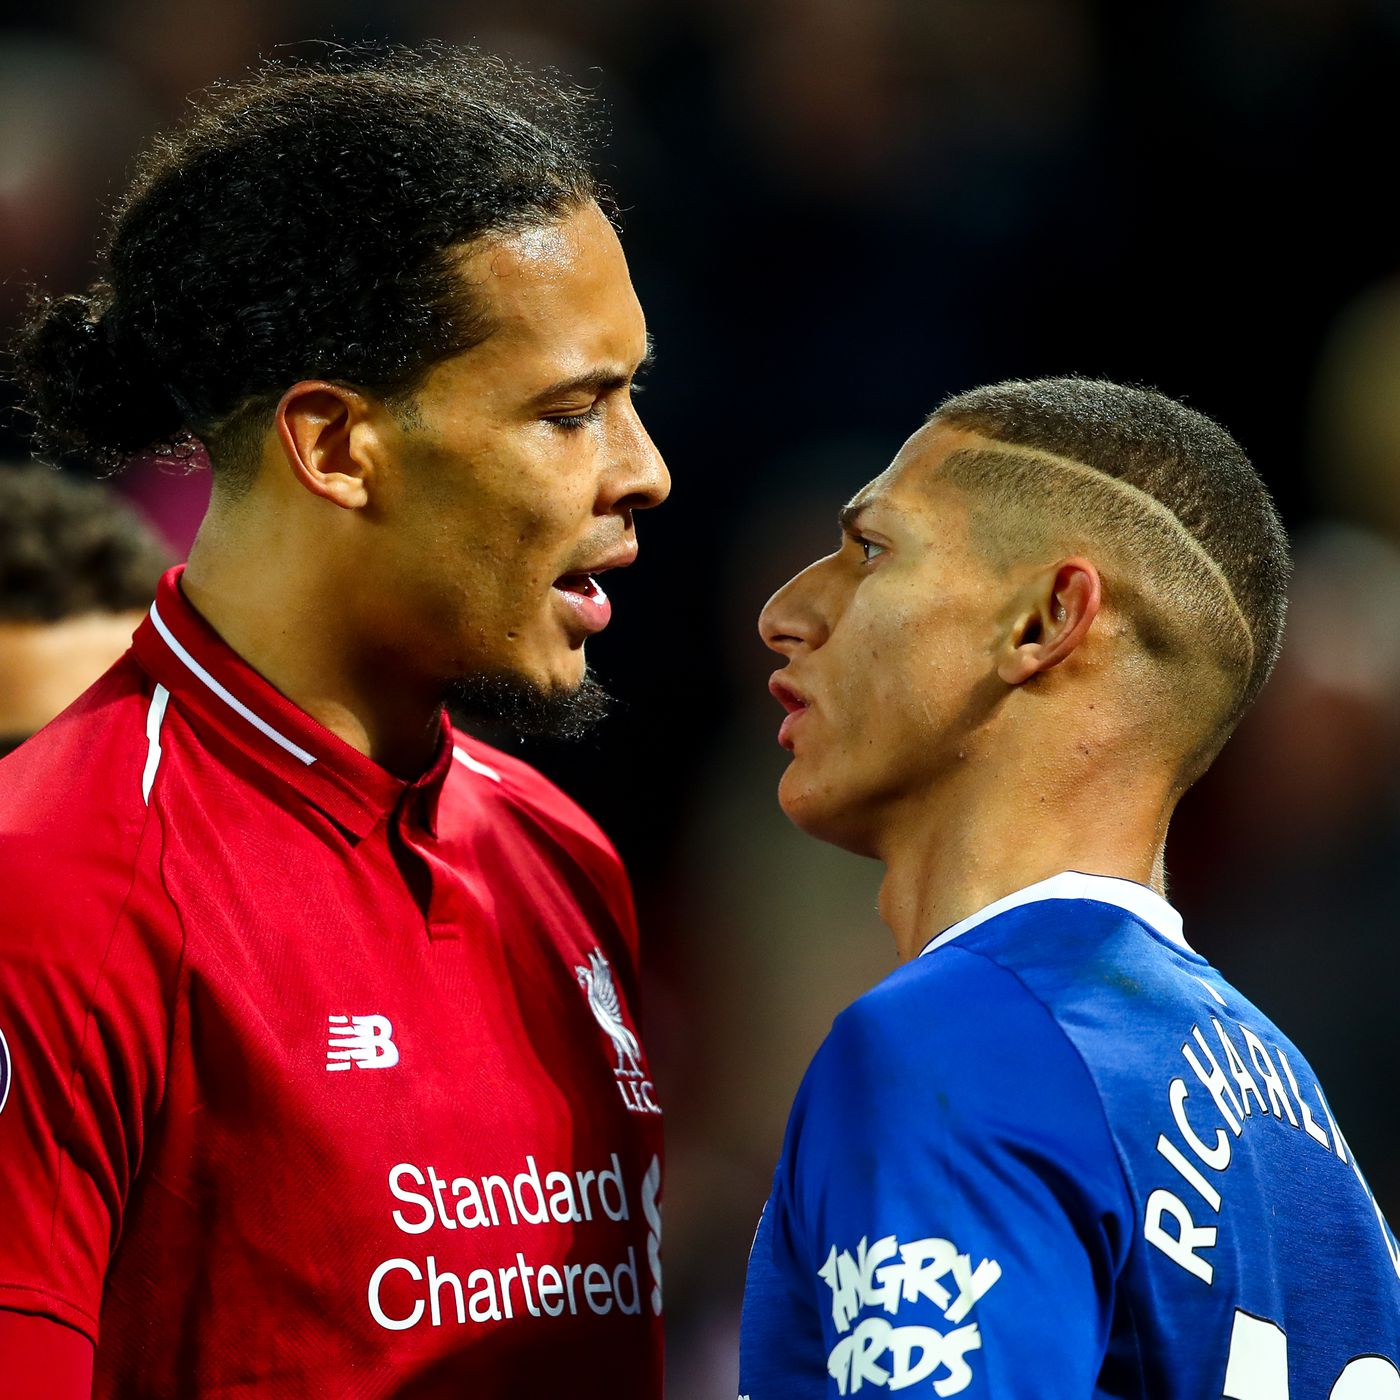 Everton V Liverpool Merseyside Derby Match Preview Football Is Back But Not As We Know It Royal Blue Mersey